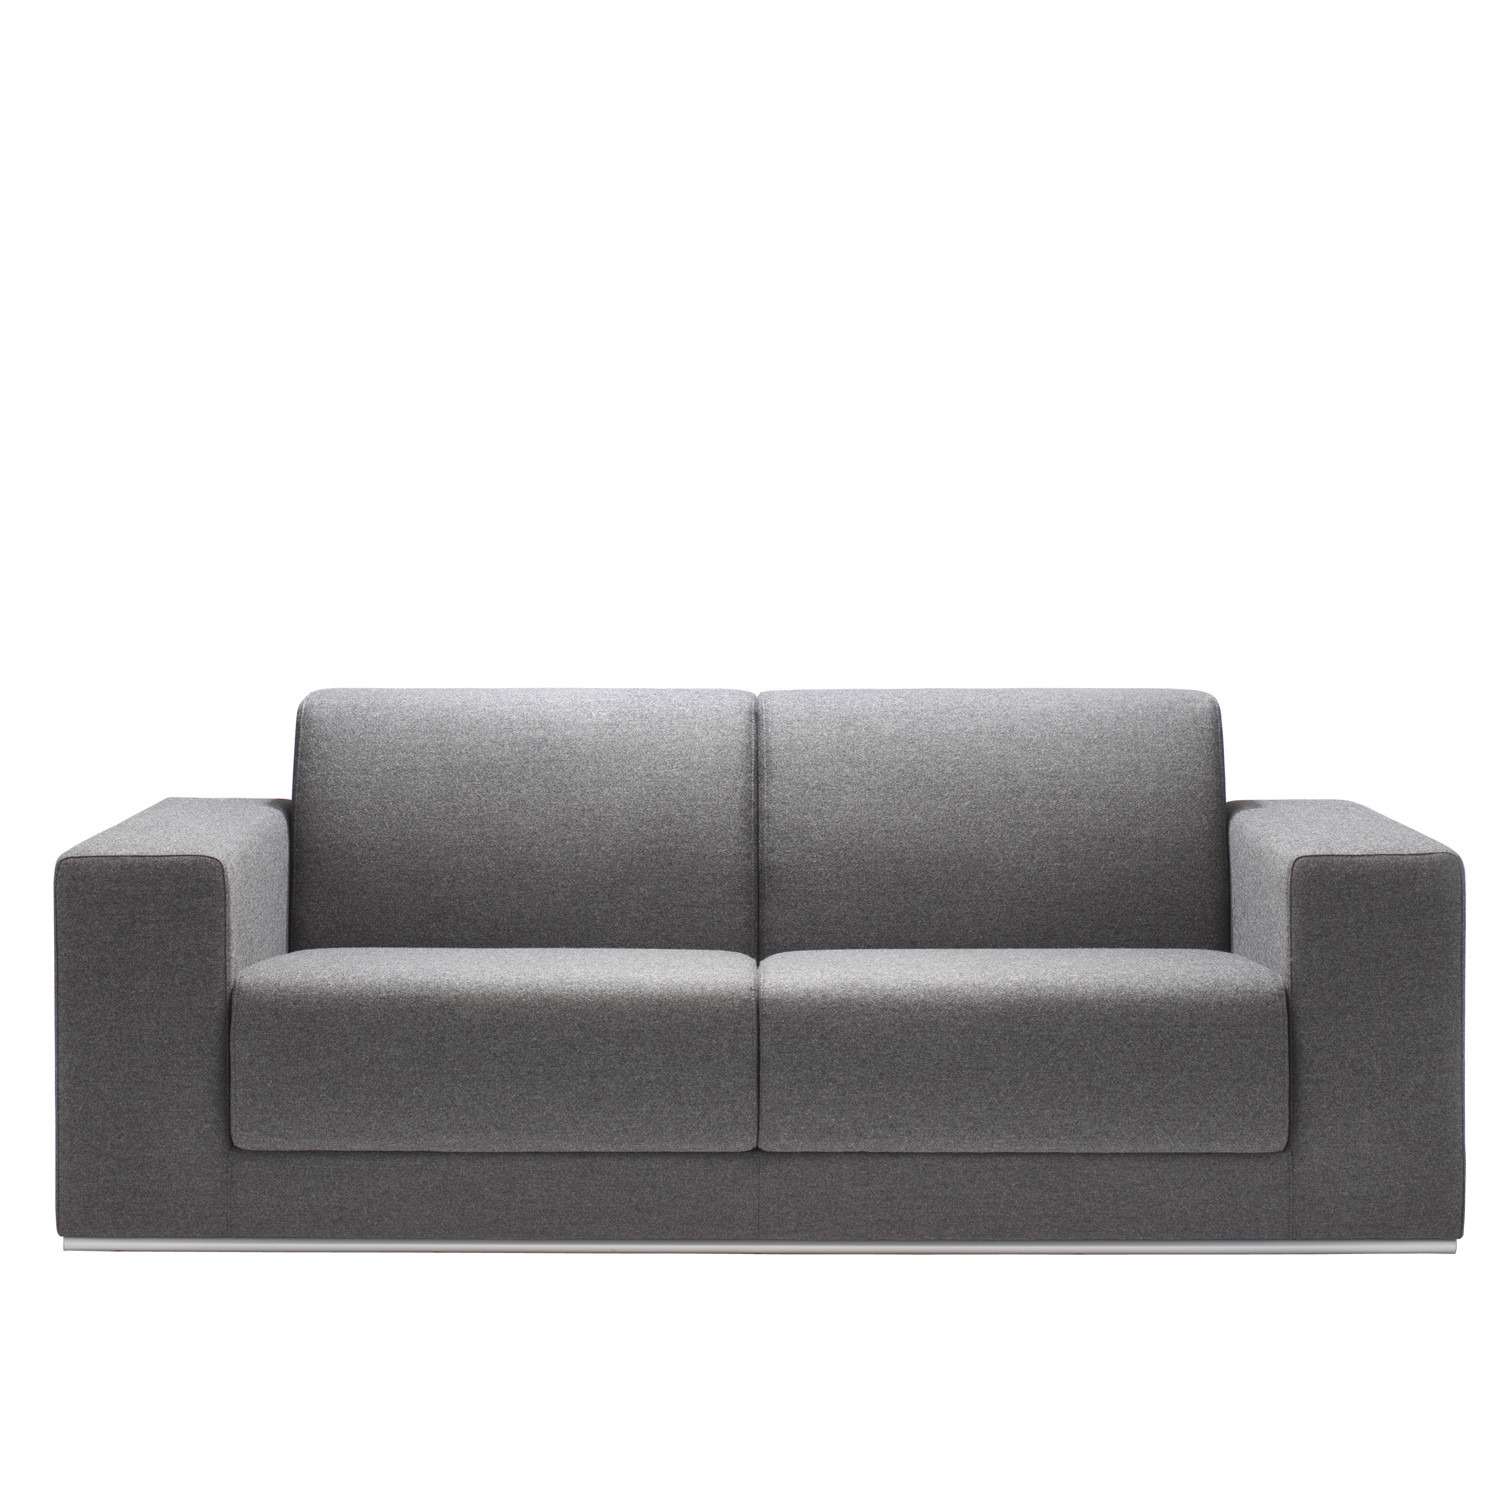 Ortega 2 Seater Sofa